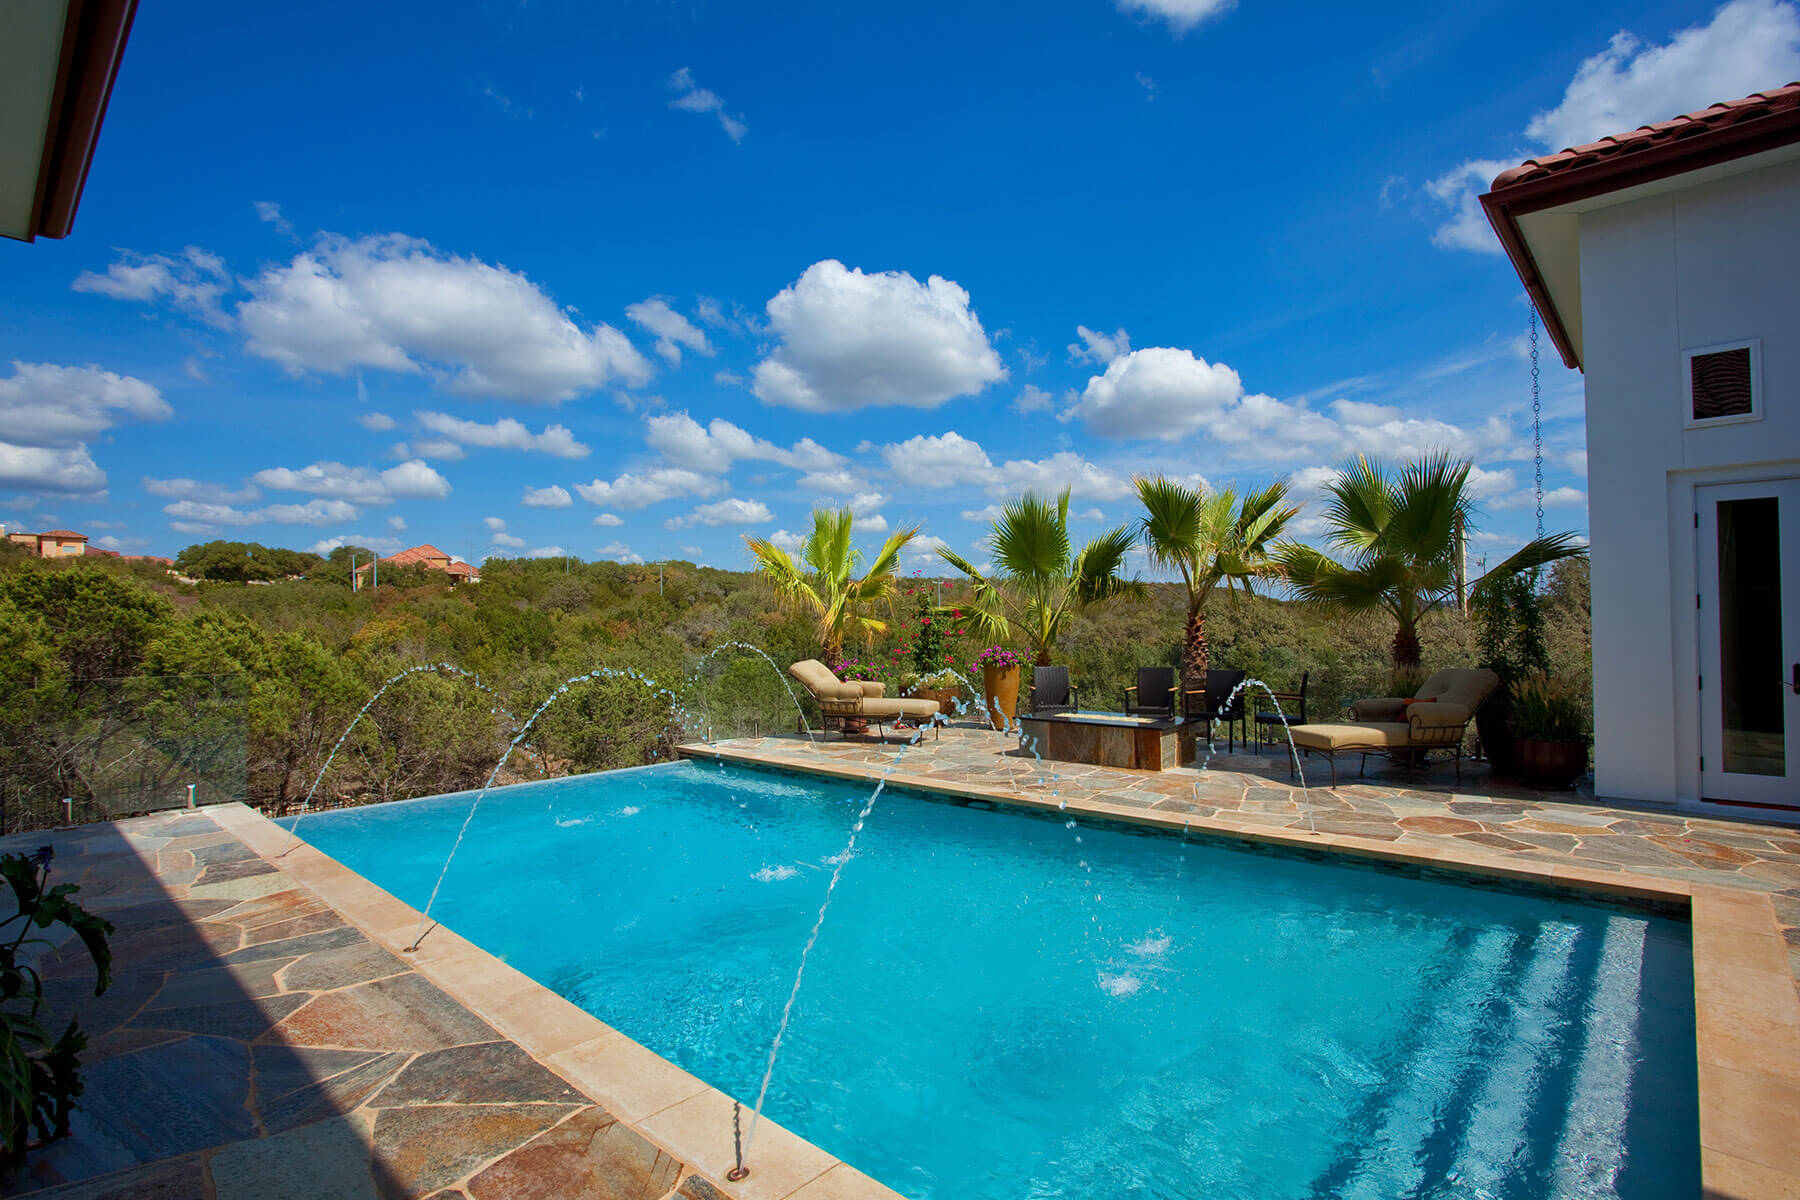 How much does a custom pool cost keith zars pools san - How much does the average swimming pool cost ...